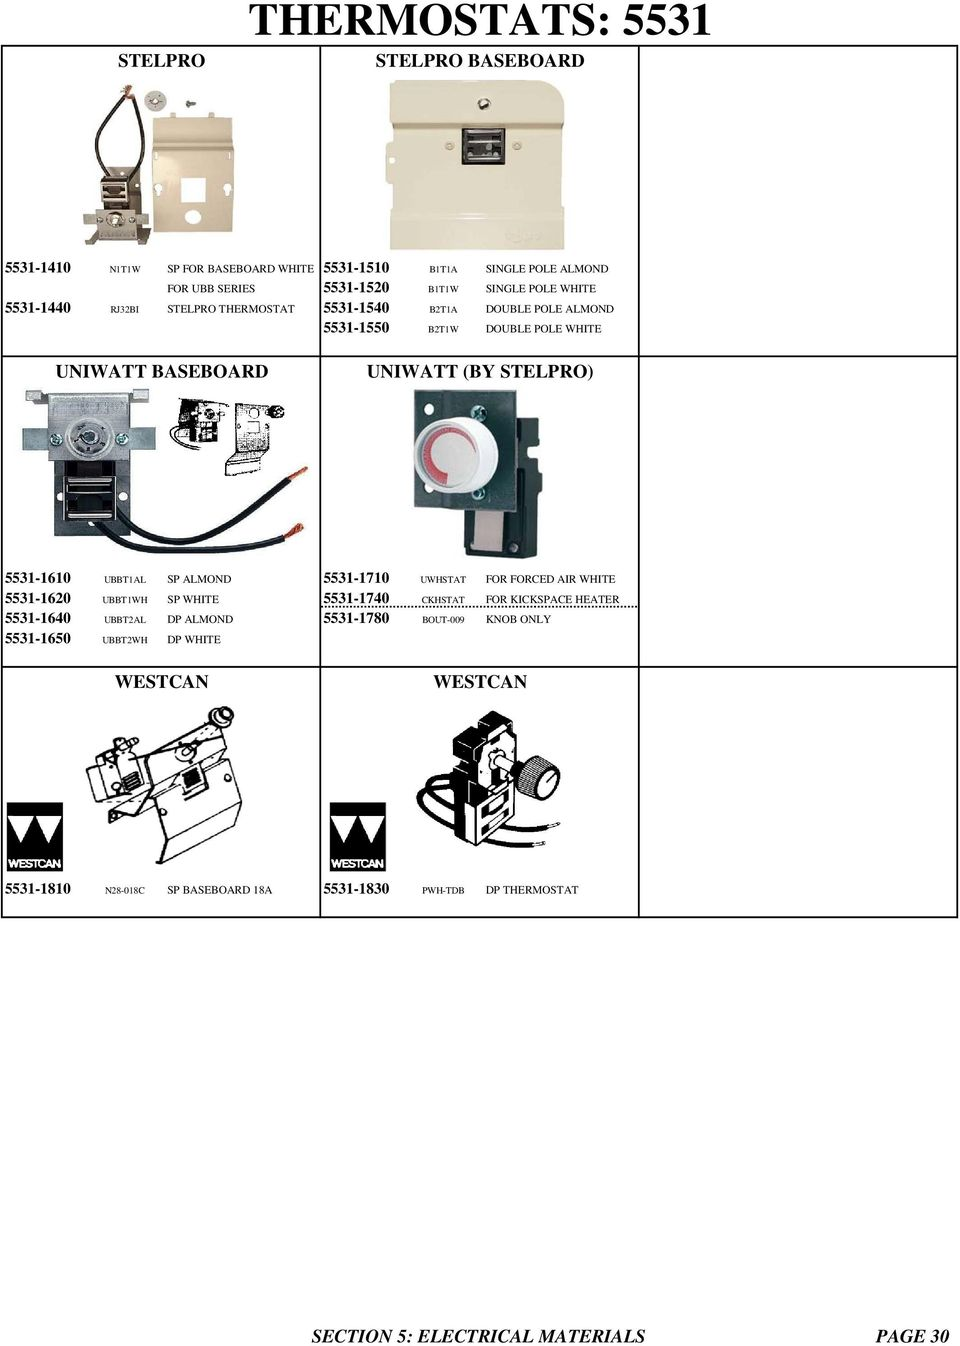 Thermostats V Oem For Specific Heaters Broan 170 Series Cadet Baseboard Heater Wiring Diagram 120 Volts Almond 5531 1710 Uwhstat Forced Air White 1620 Ubbt1wh Sp